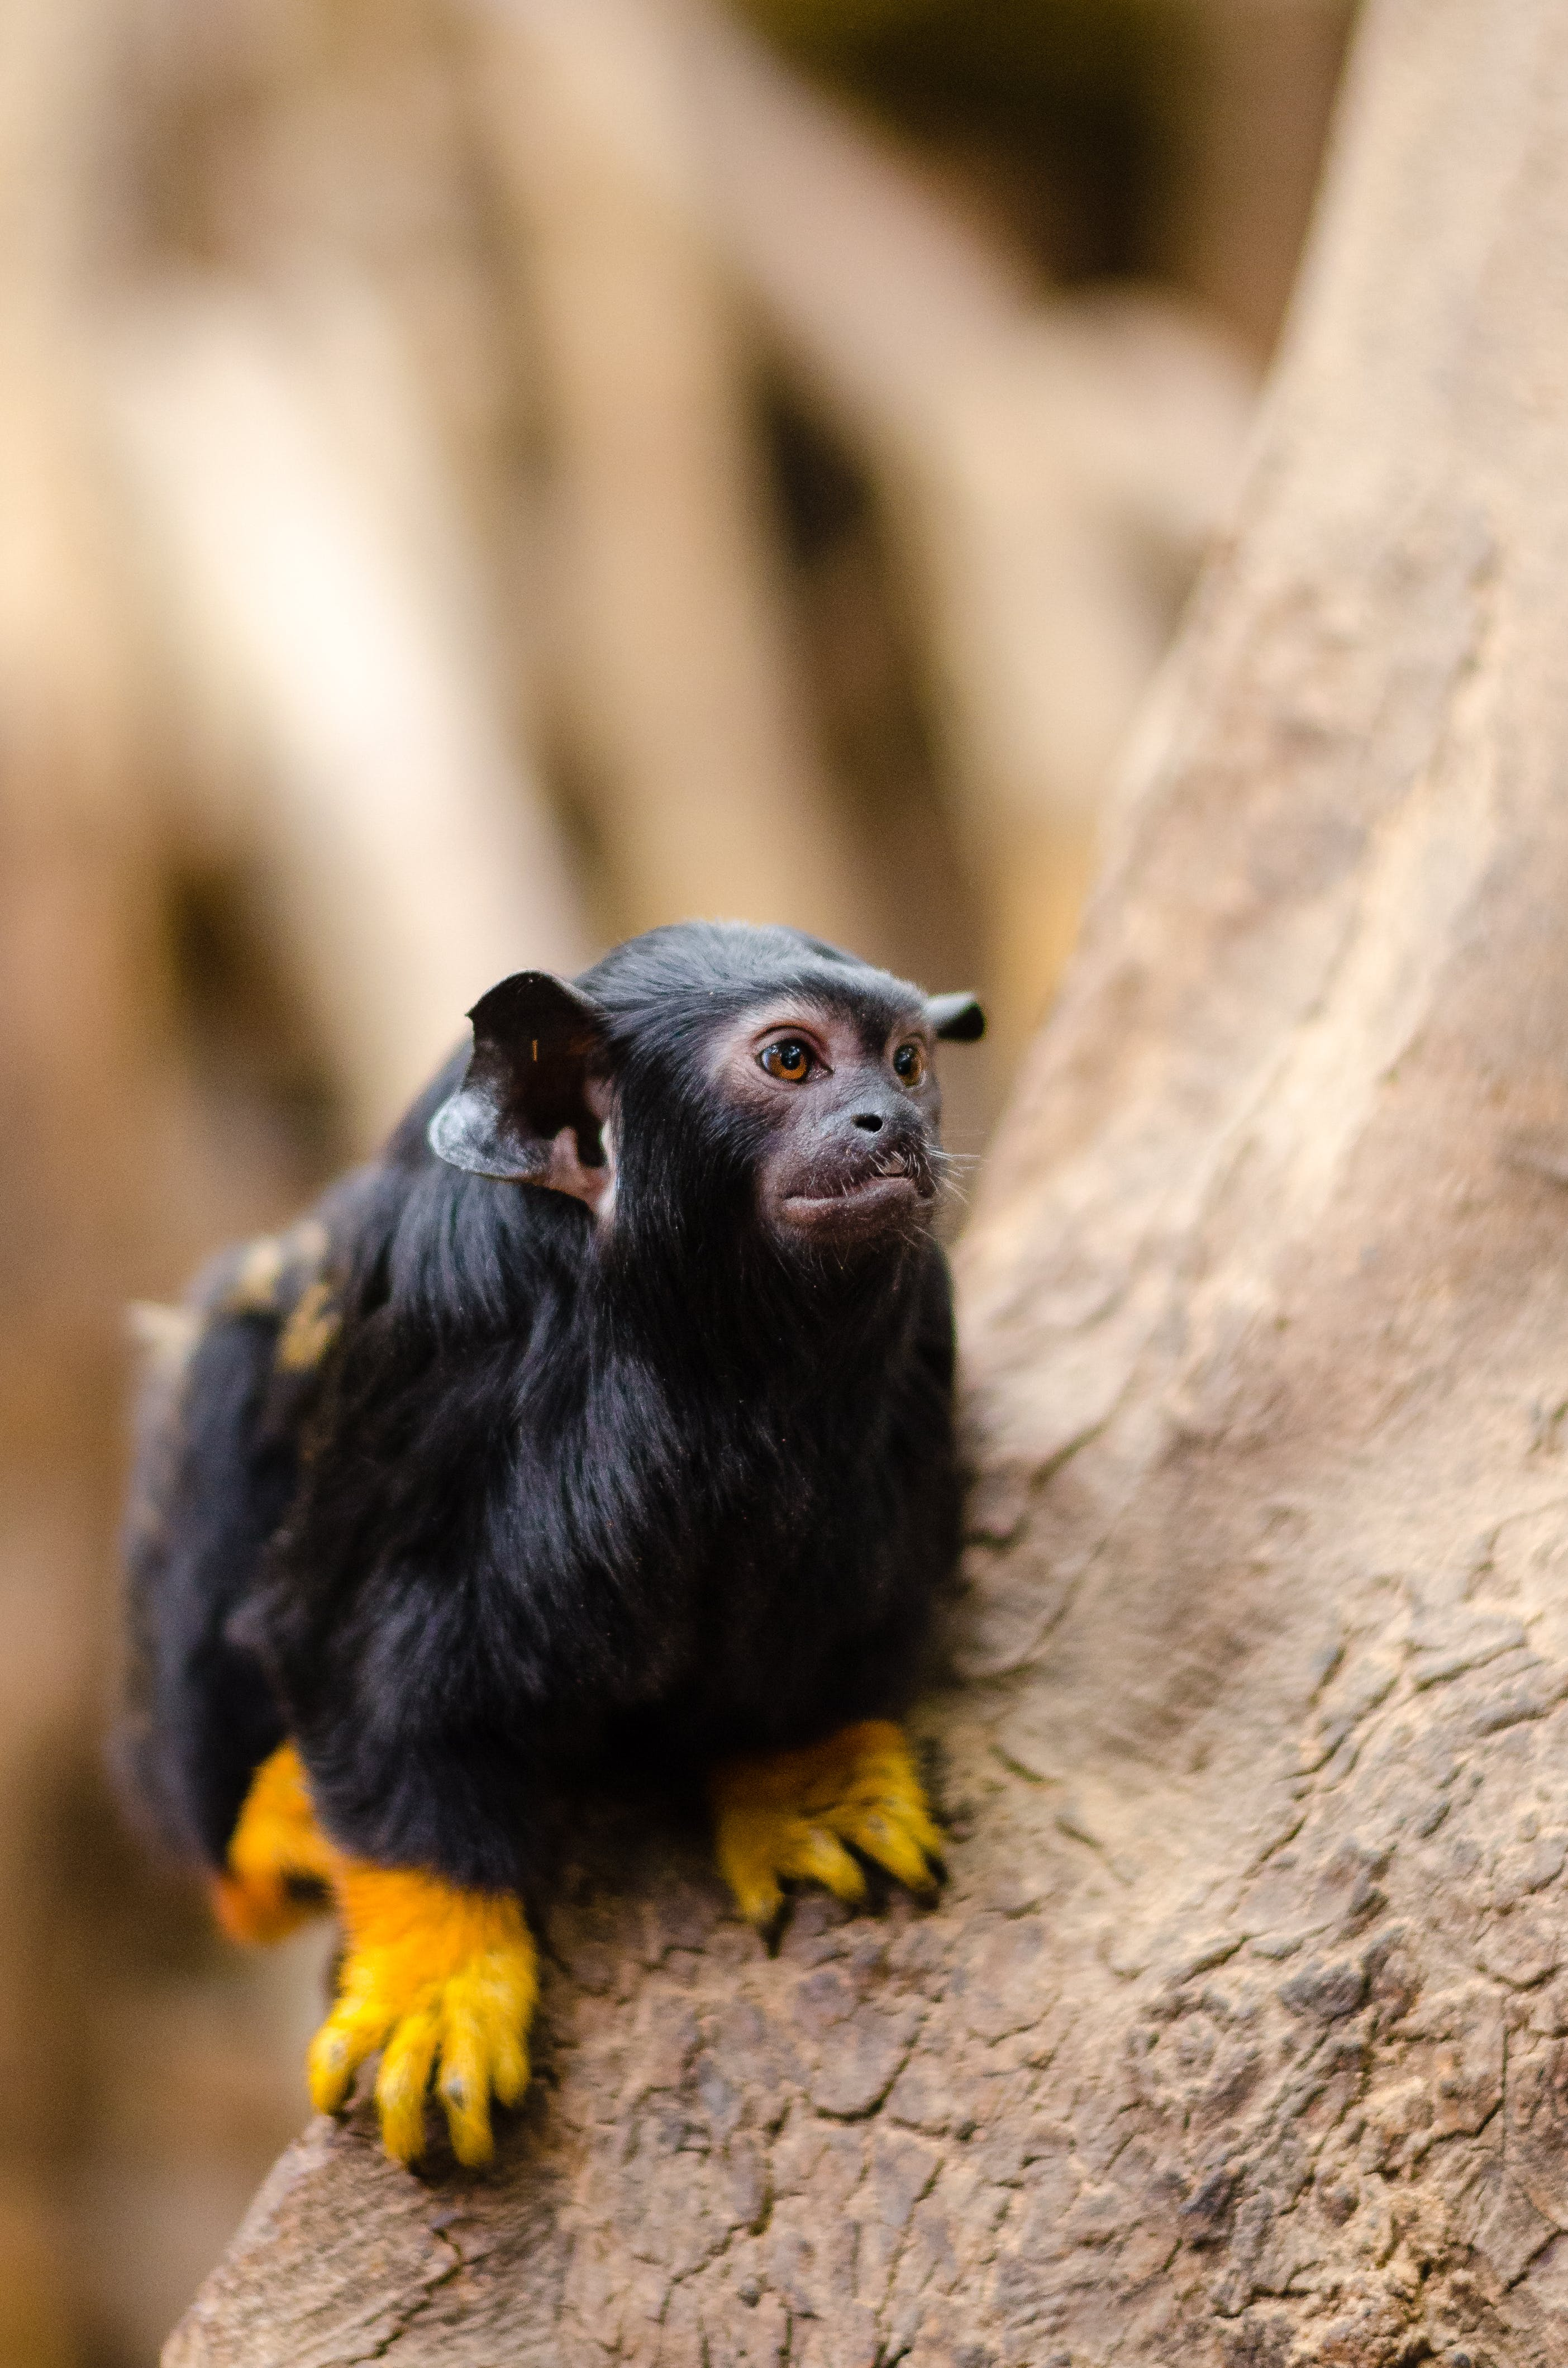 Black Long Fur Animal With Yellow Claws on Tree Trunk during Day Time